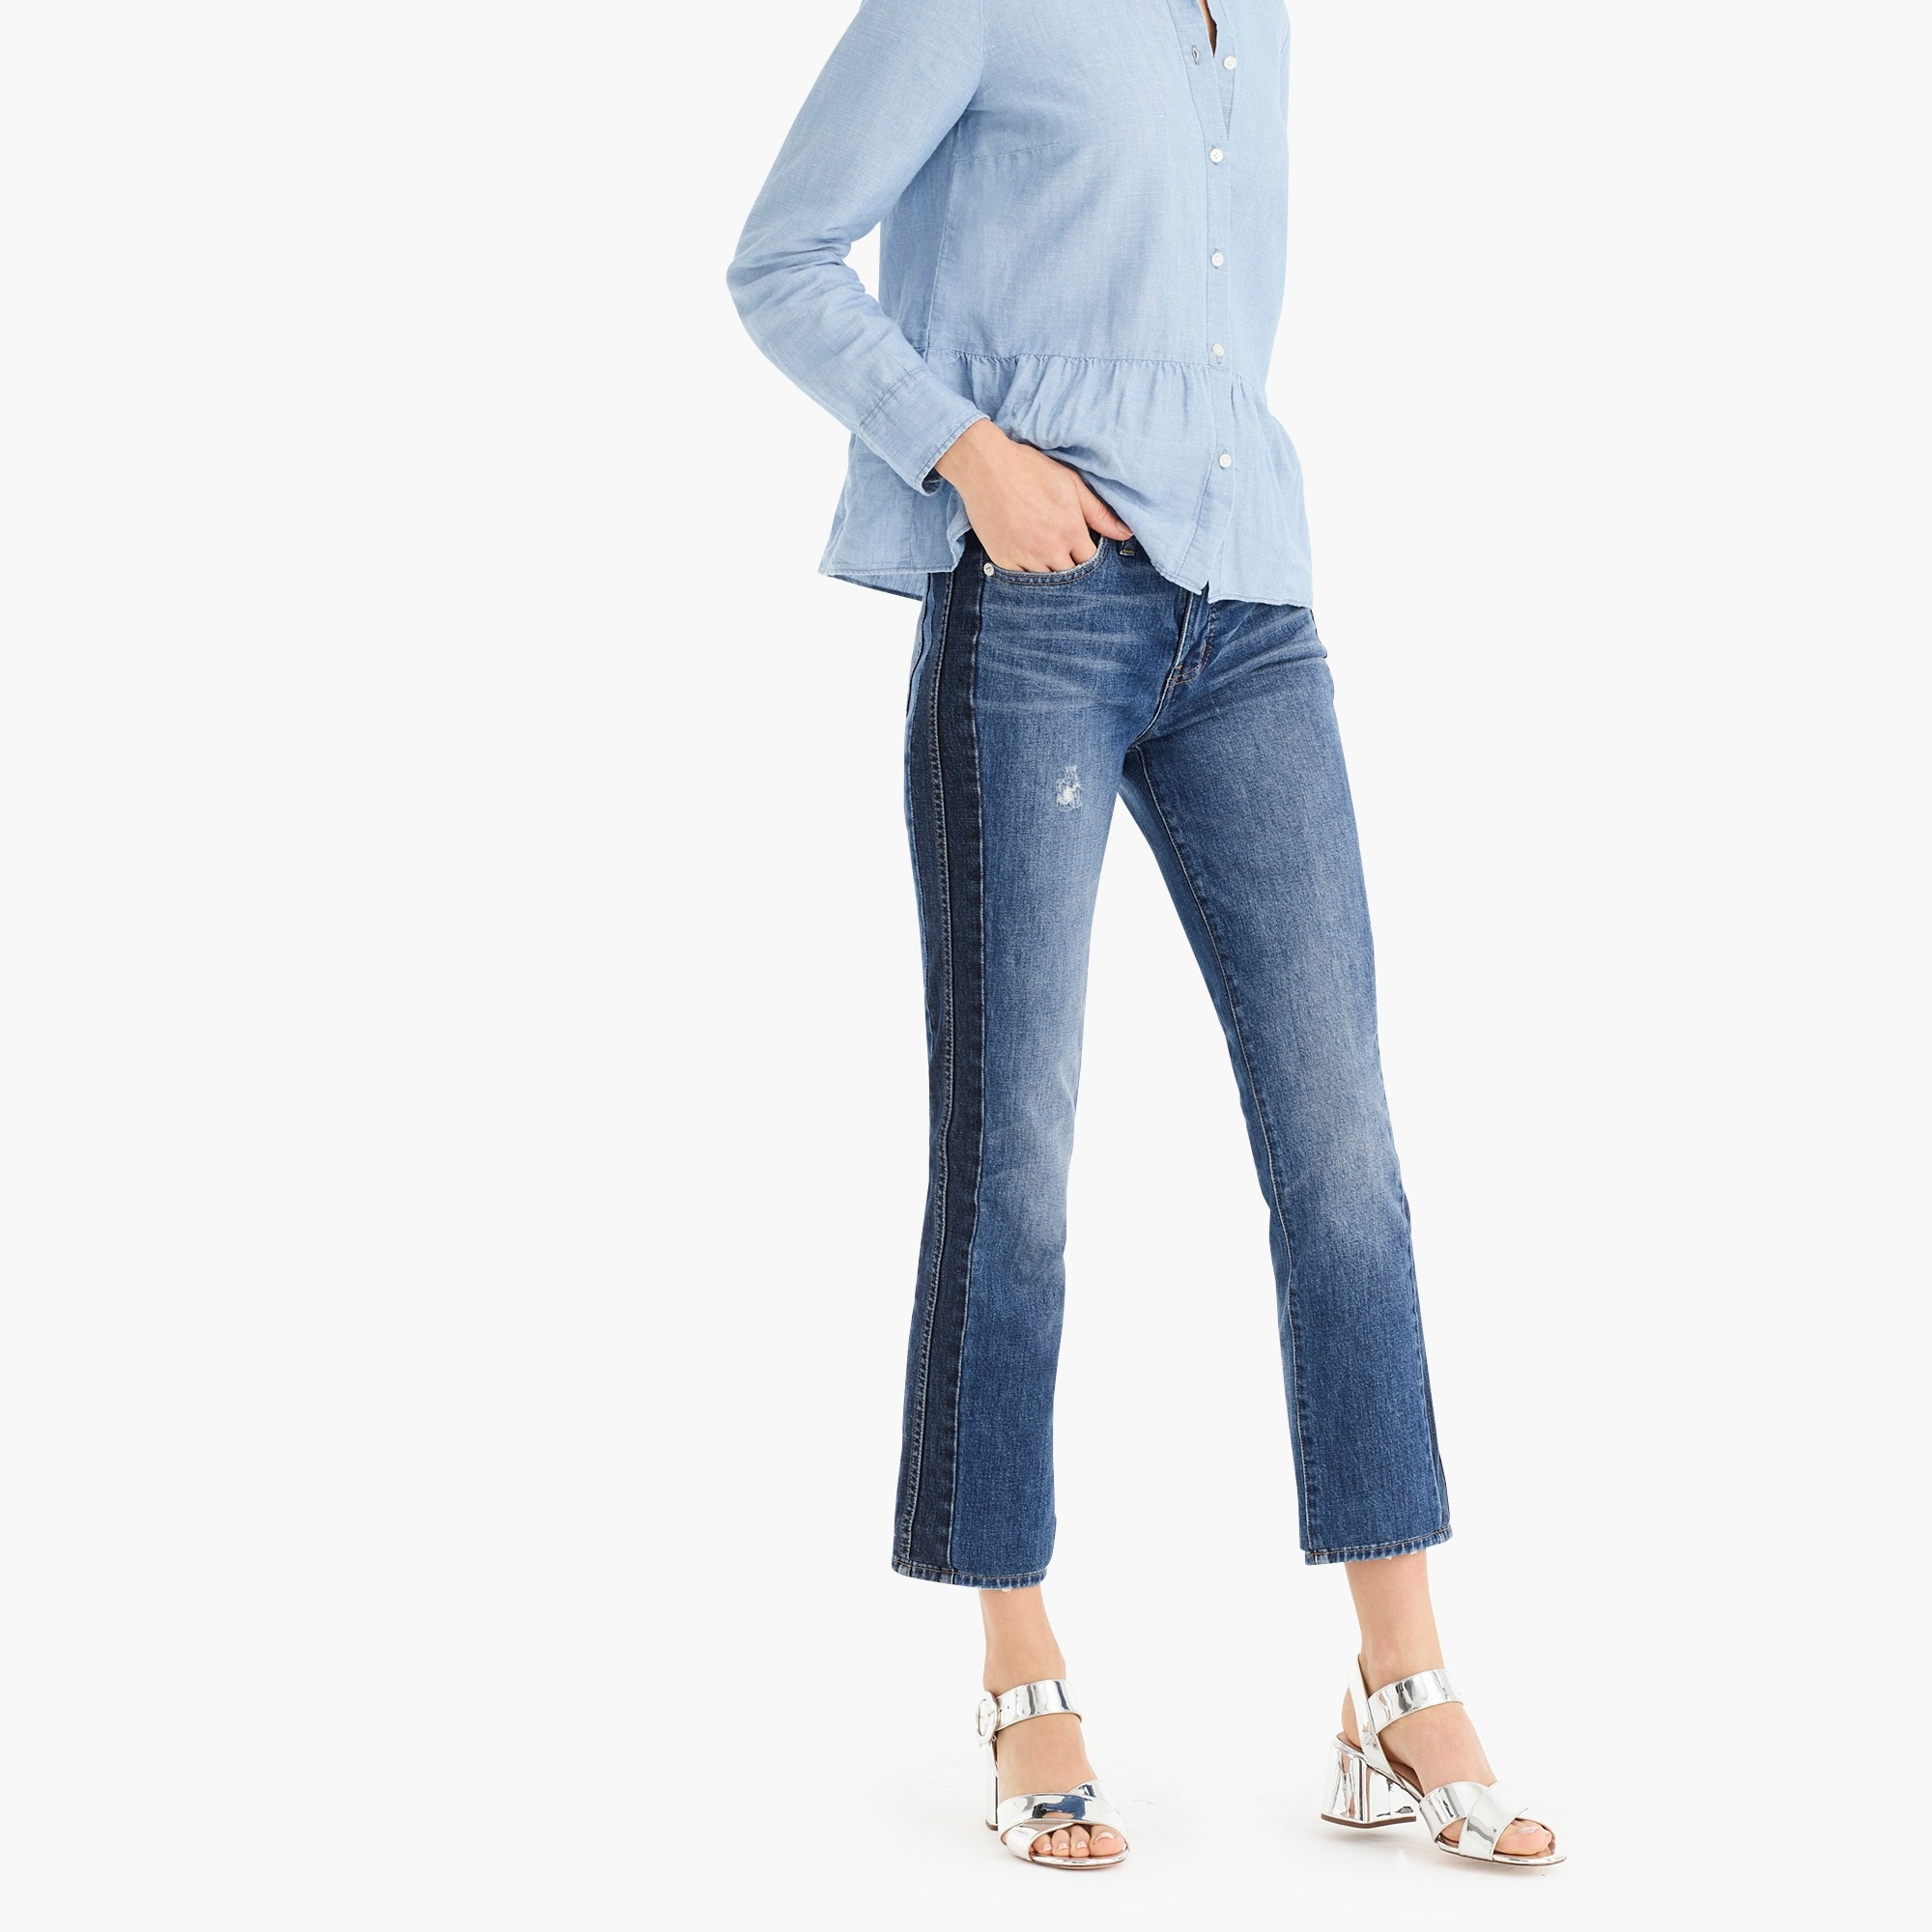 Image 1 for Petite vintage straight jean in two-tone denim